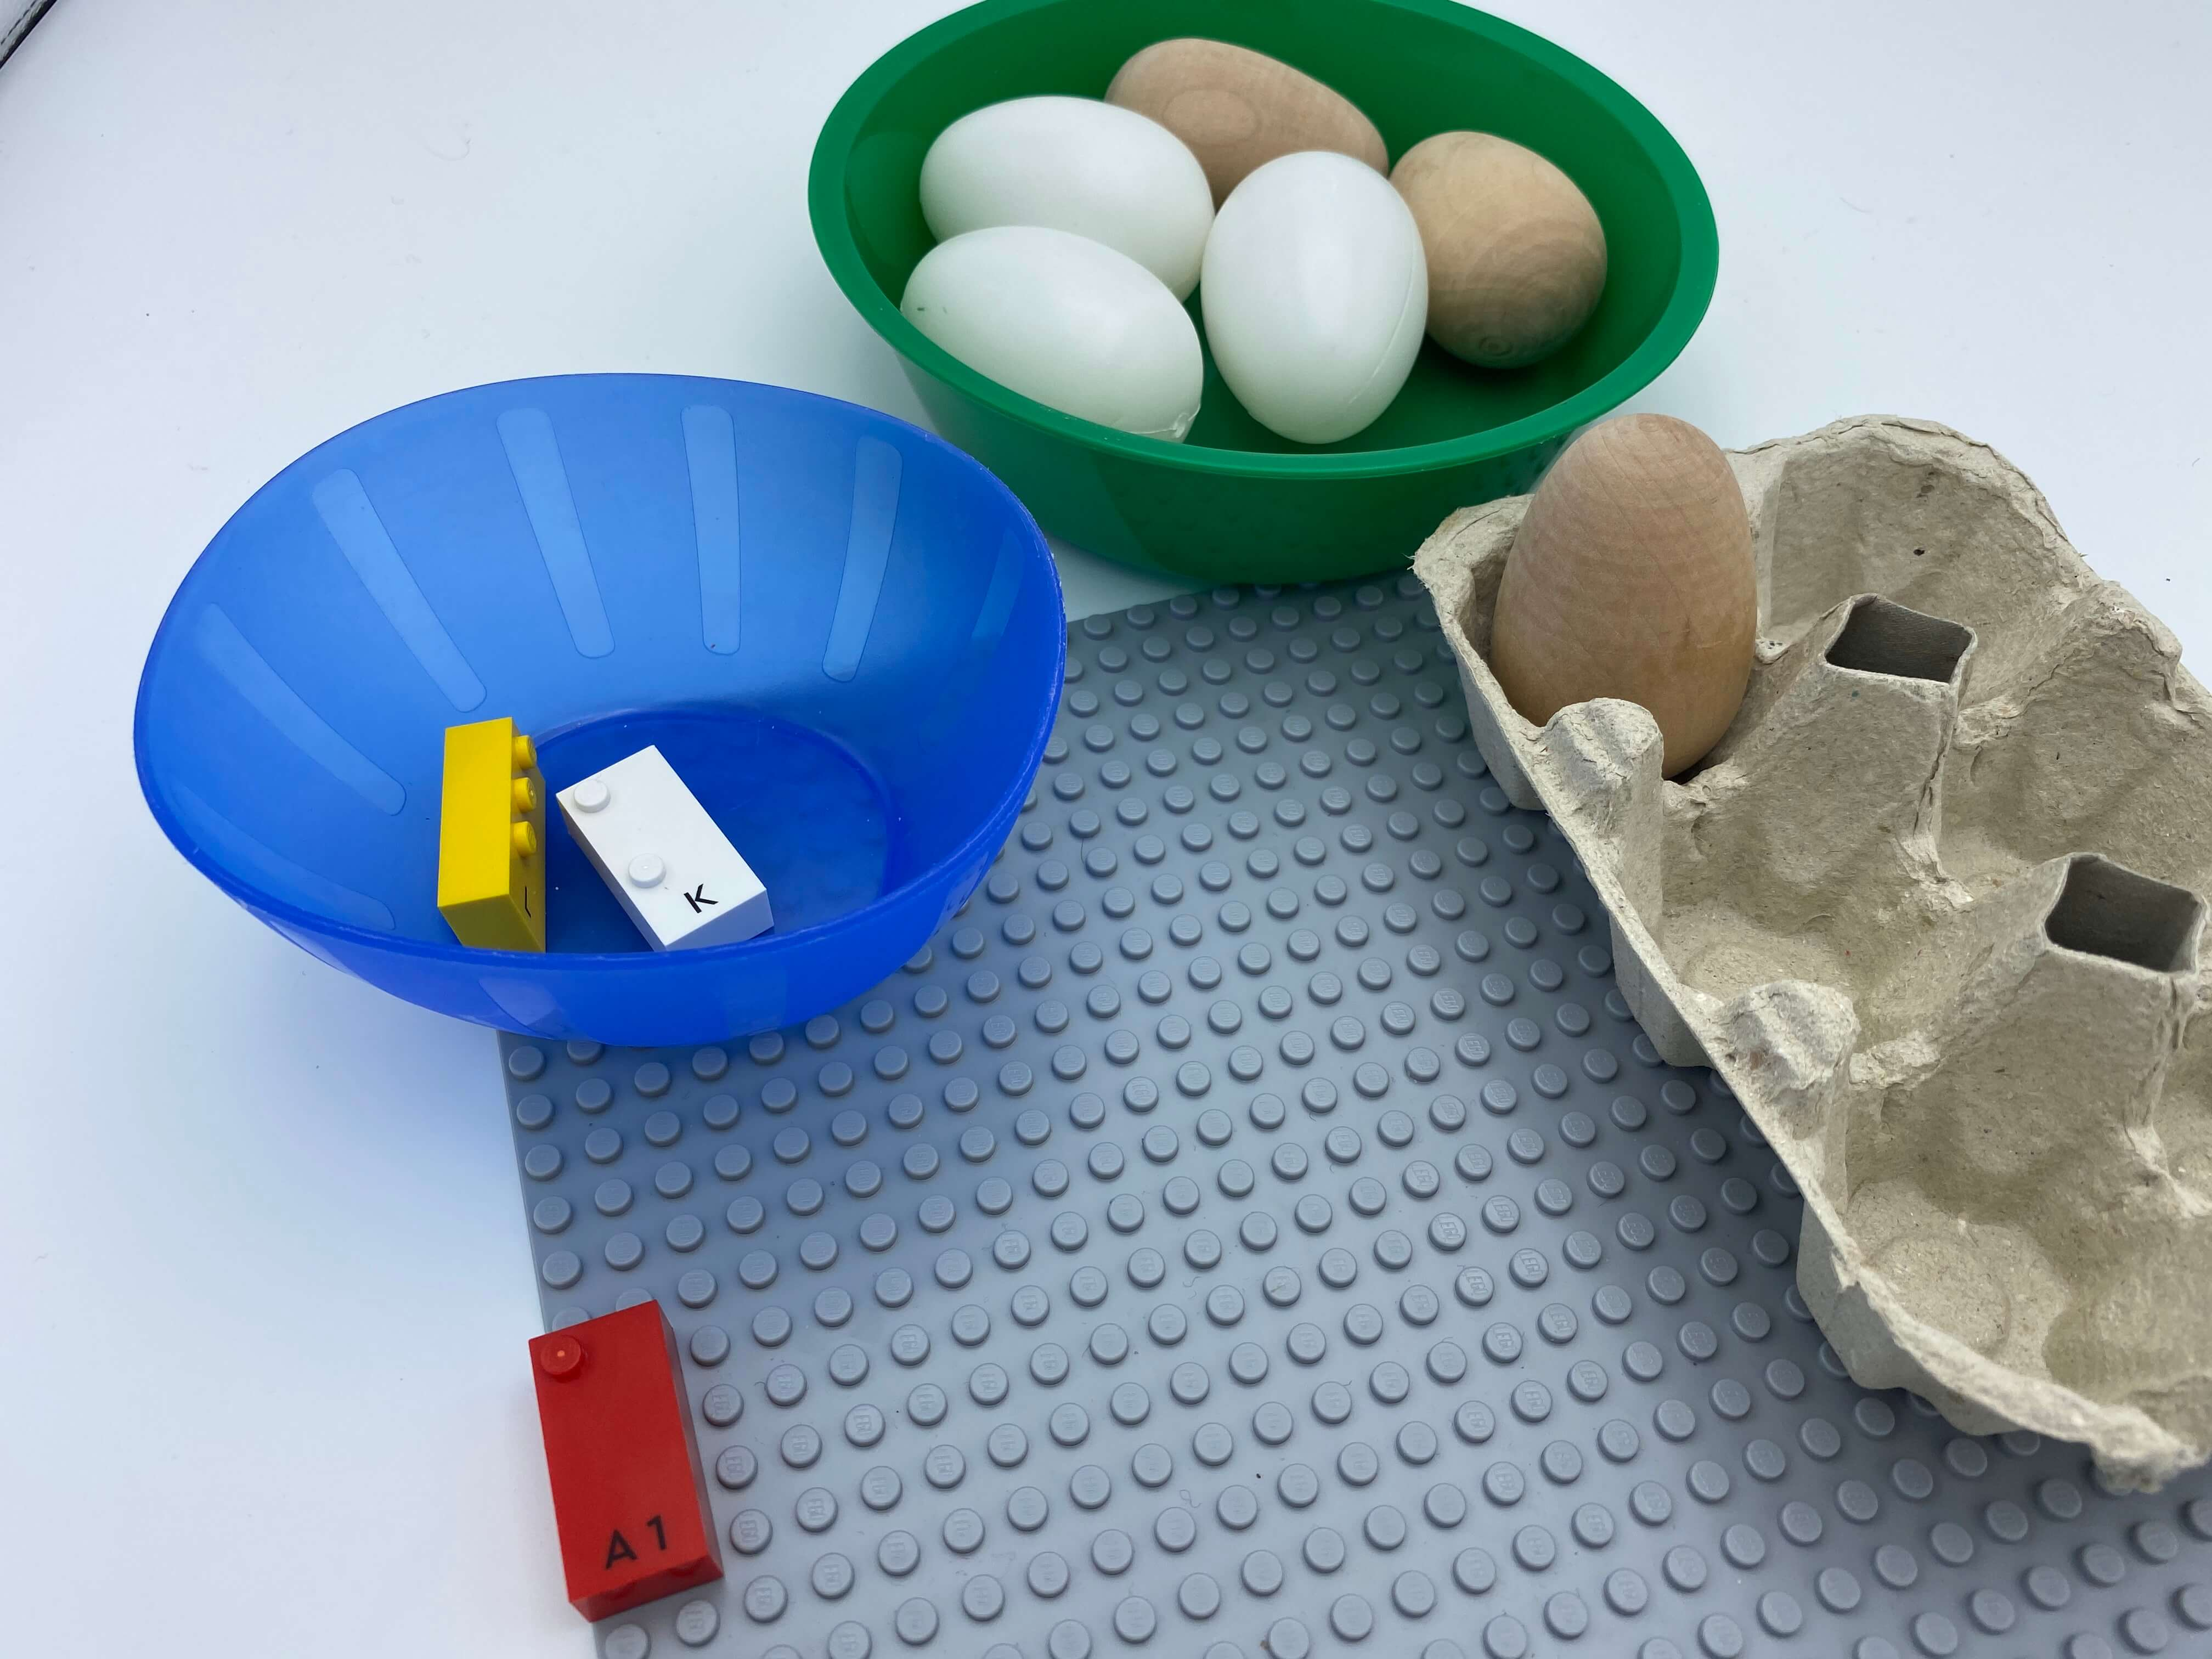 Letter brick a on the base plate, egg carton with 1 egg in dot 1, a bowl with 2 bricks, another bowl with 5 eggs.